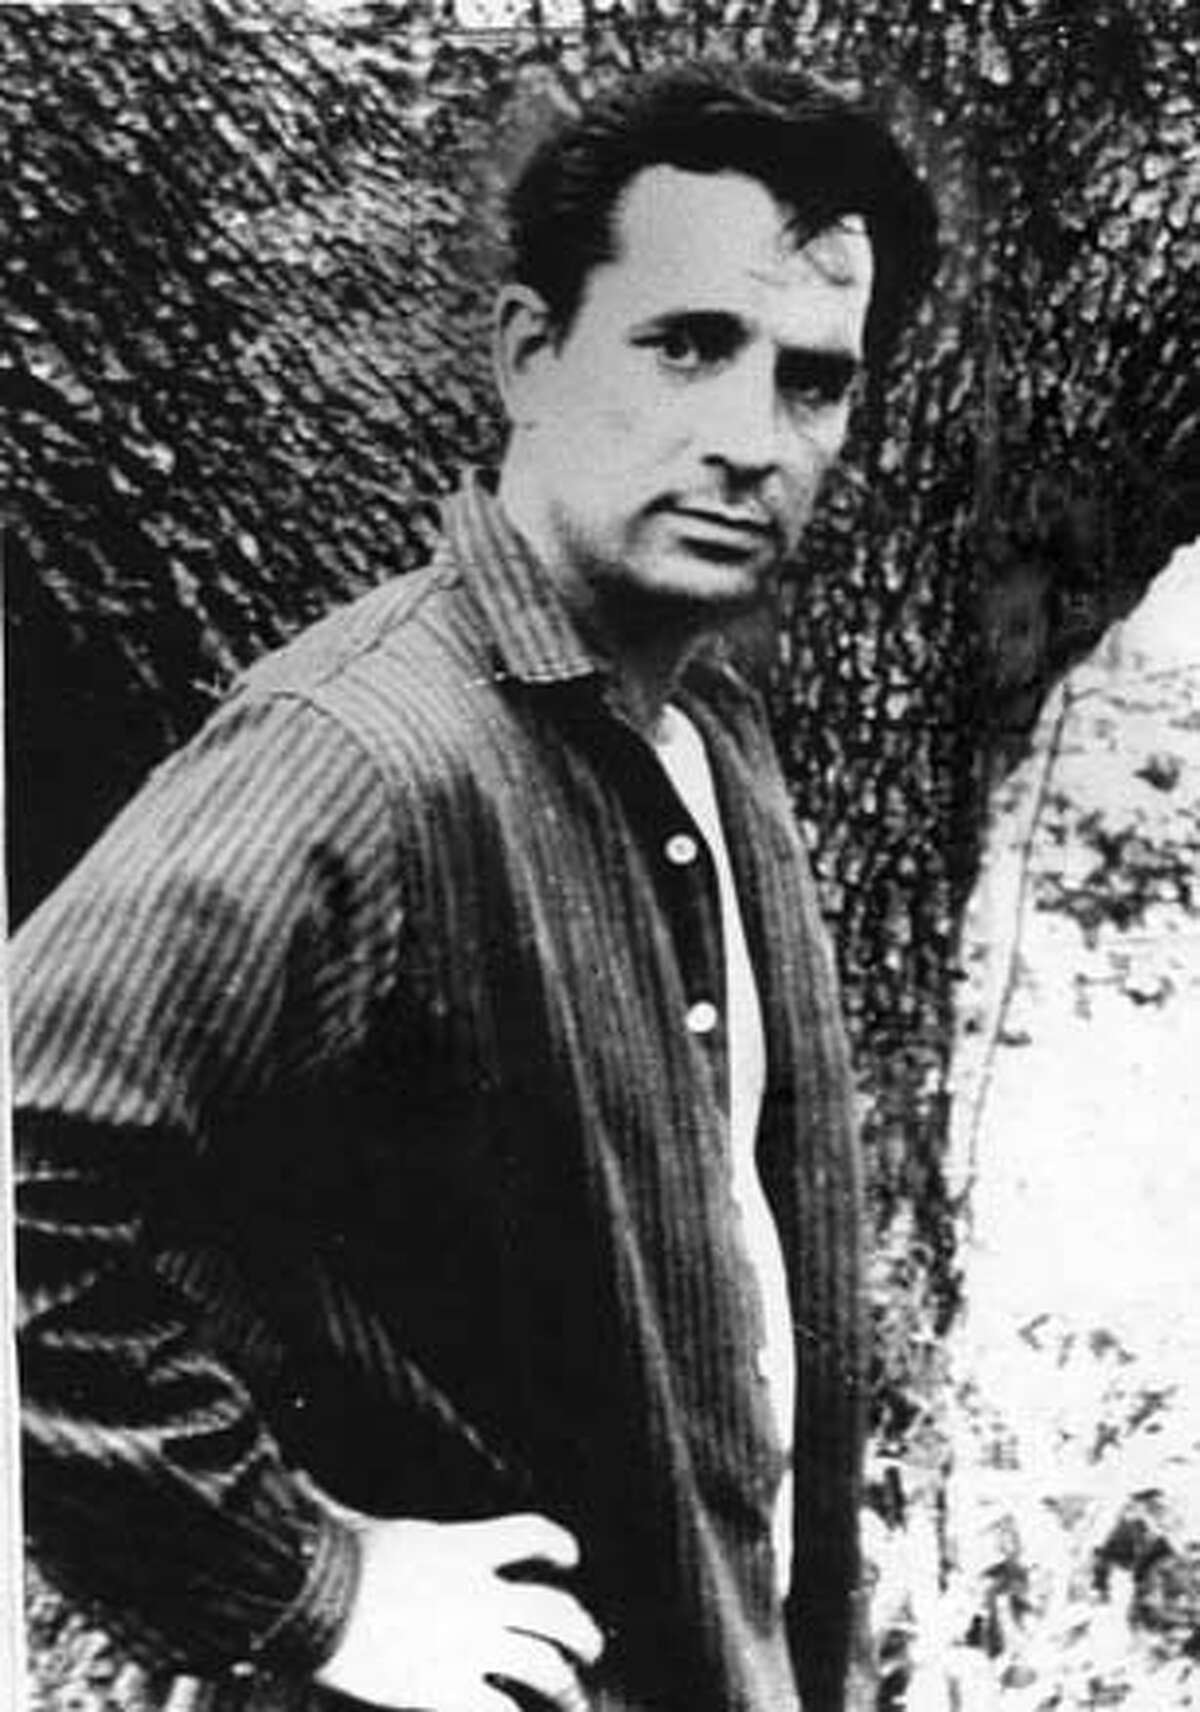 THIS YEAR MARKS THE 25TH ANNIVERSARY OF THE PUBLICATION OF JACK KEROUAC'S NOVEL 'ON THE ROAD,' WHOSE STYLE, LANGUAGE AND PHILOSOPHY SHOCKED LITERARY AMERICA AT THE TIME. KEROUAC DIED IN 1969 AT THE AGE OF 47.